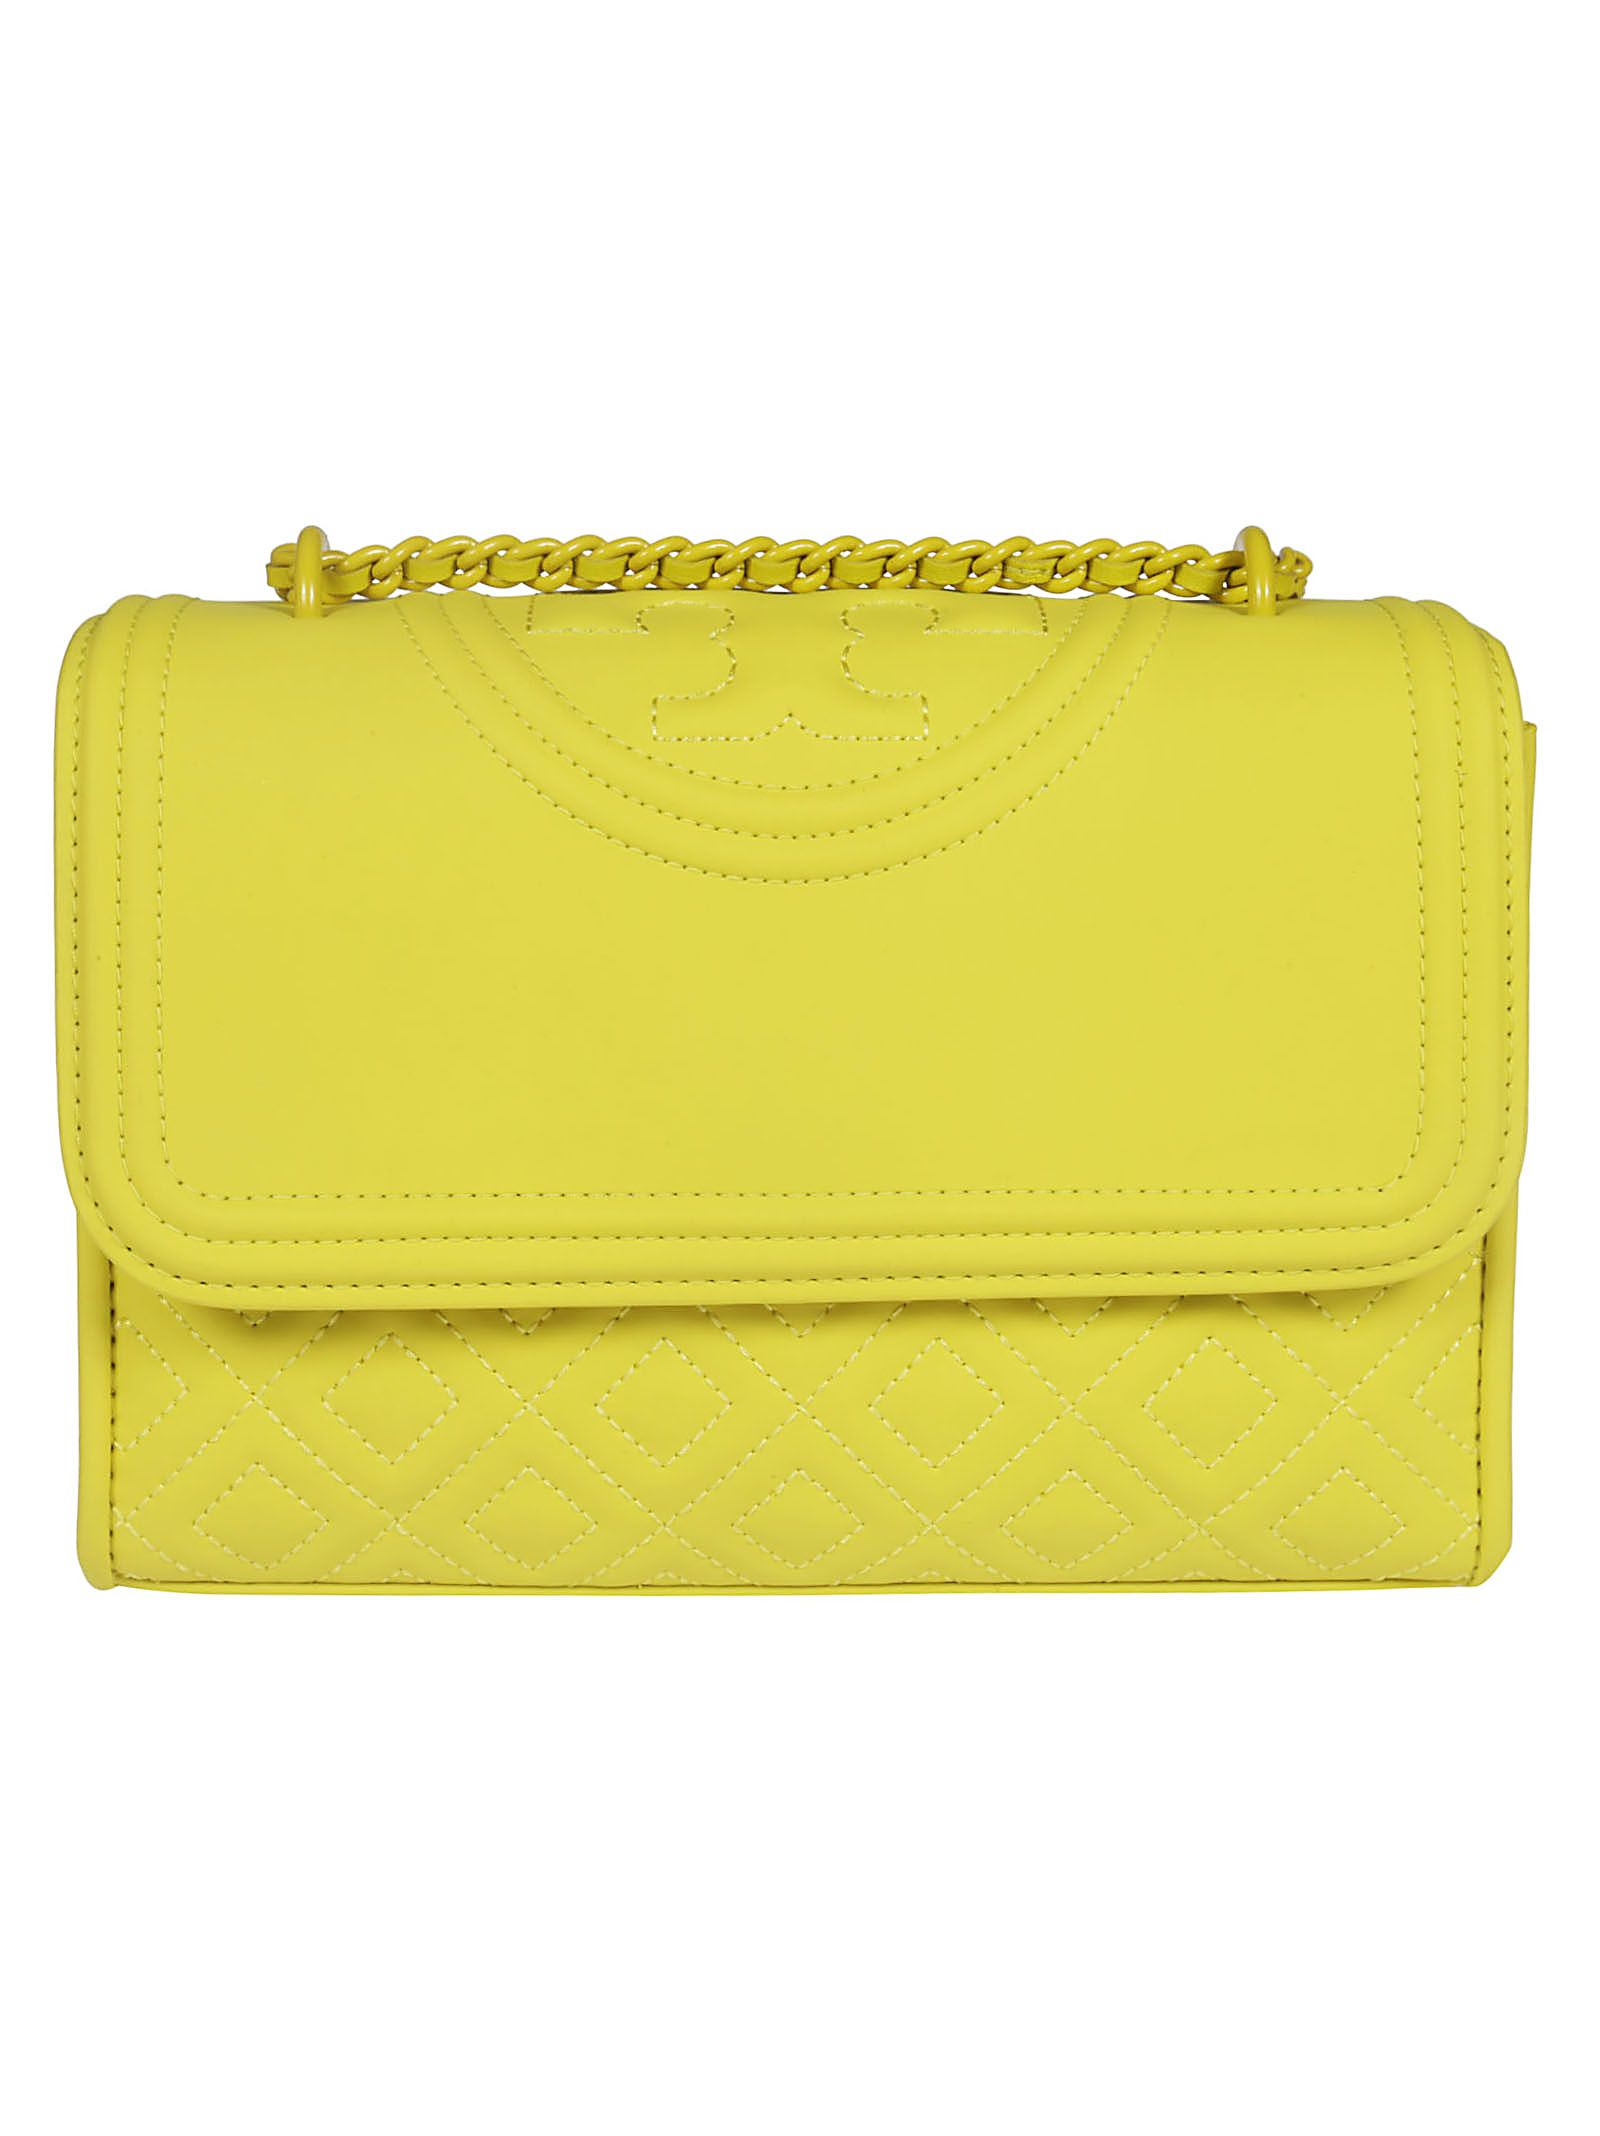 c2b26538915 Tory Burch Tory Burch Fleming Embossed Logo Shoulder Bag - Yellow ...